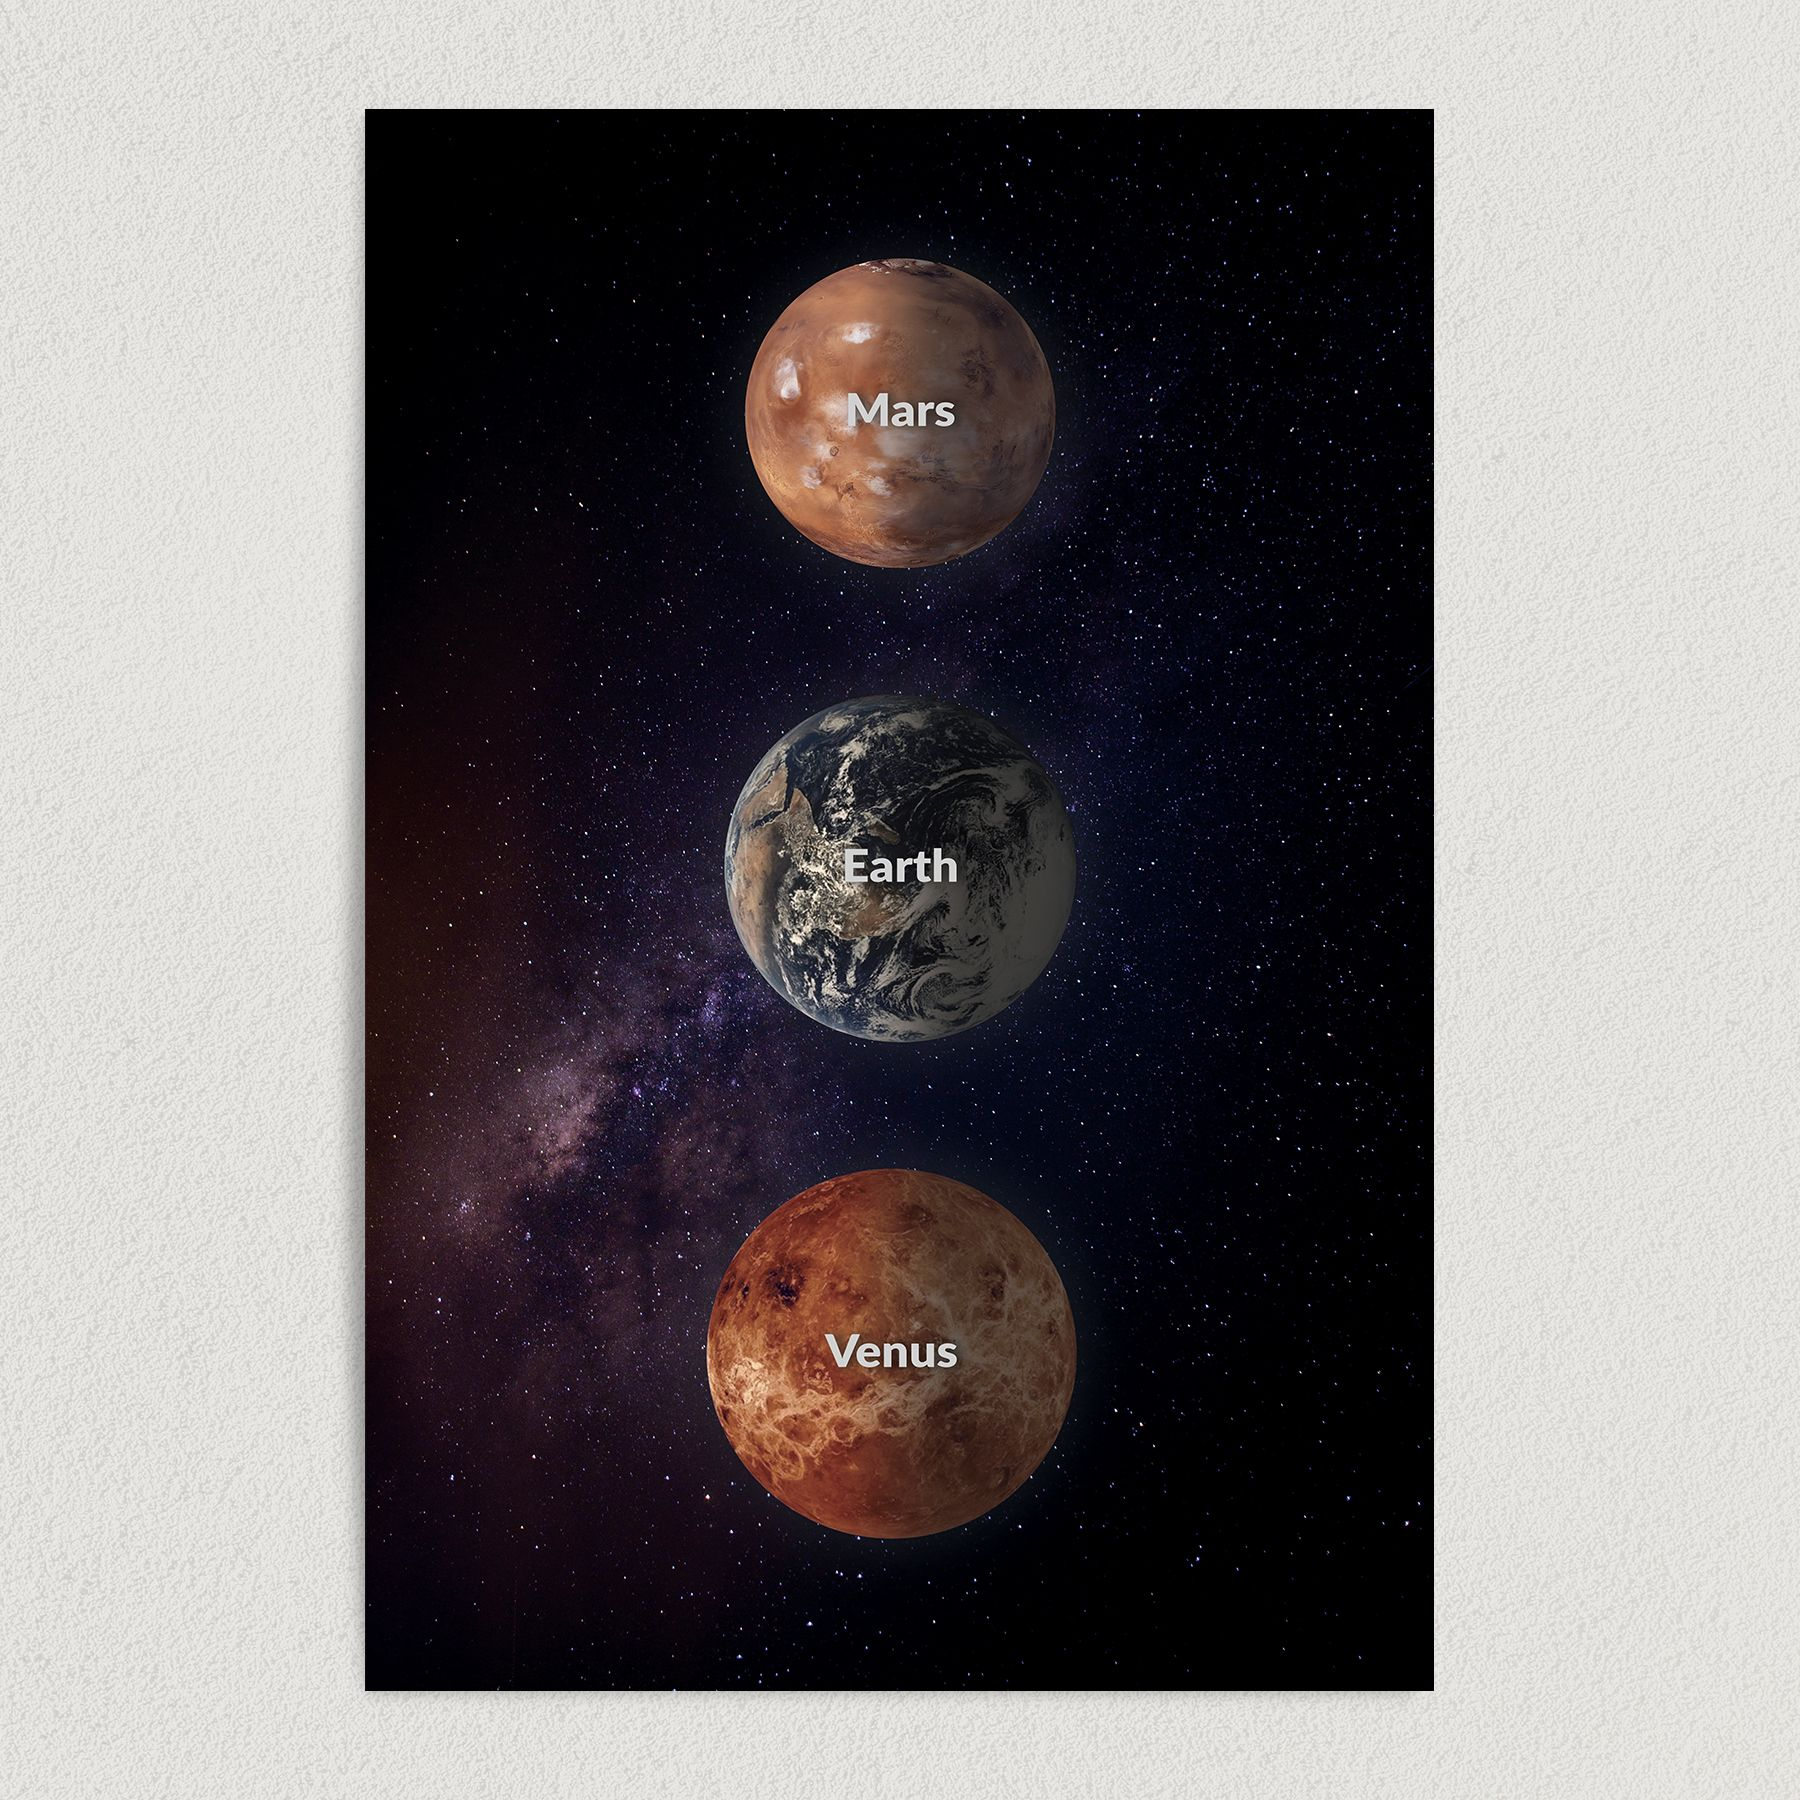 Third Planet From the Sun Art Print Poster S1001